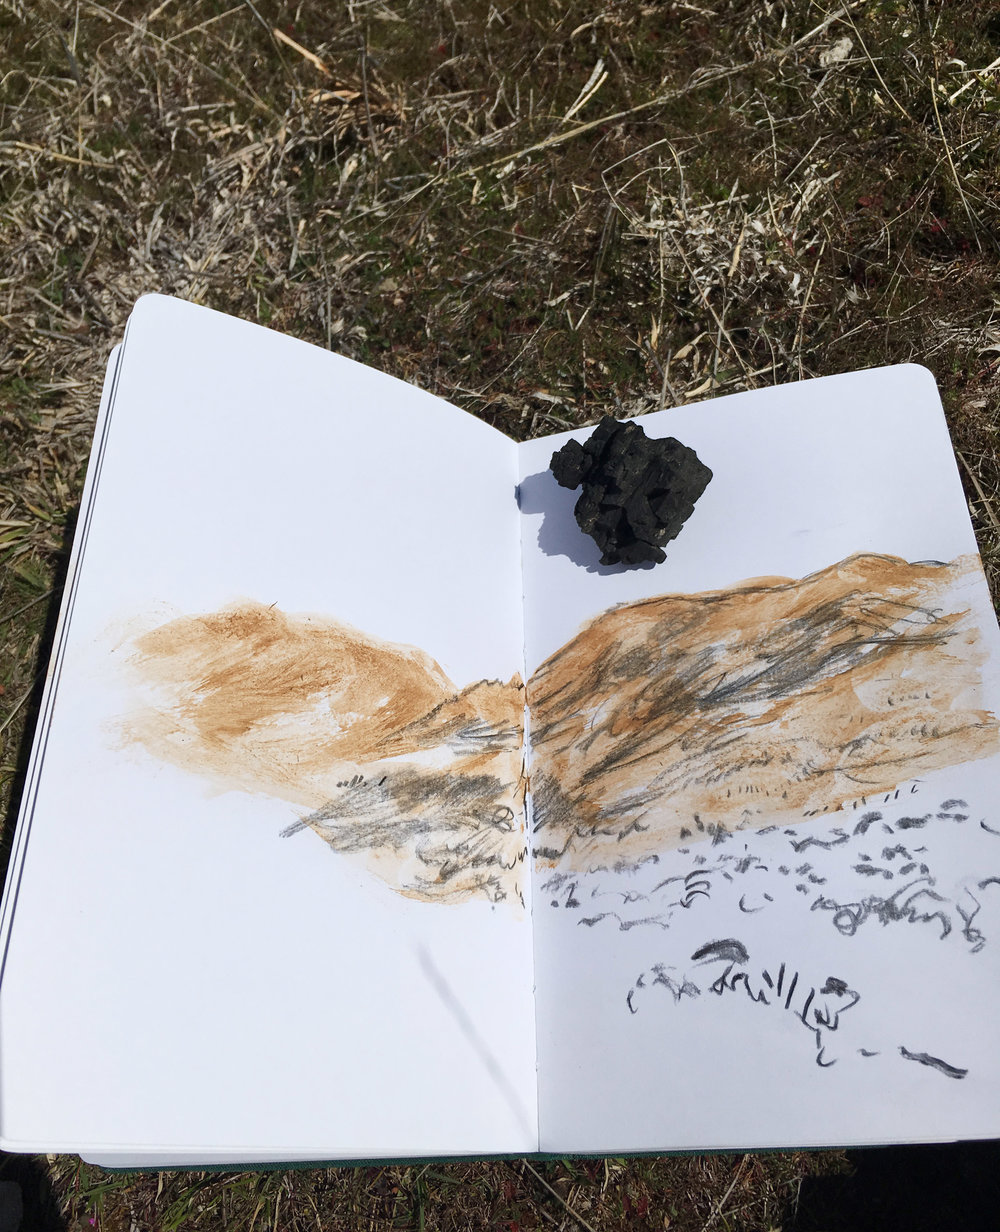 field drawing using clay soil rubbed with wet fingers and a scavenged piece of burnt log as charcoal, 2017, Tidbinbilla Nature Reserve.